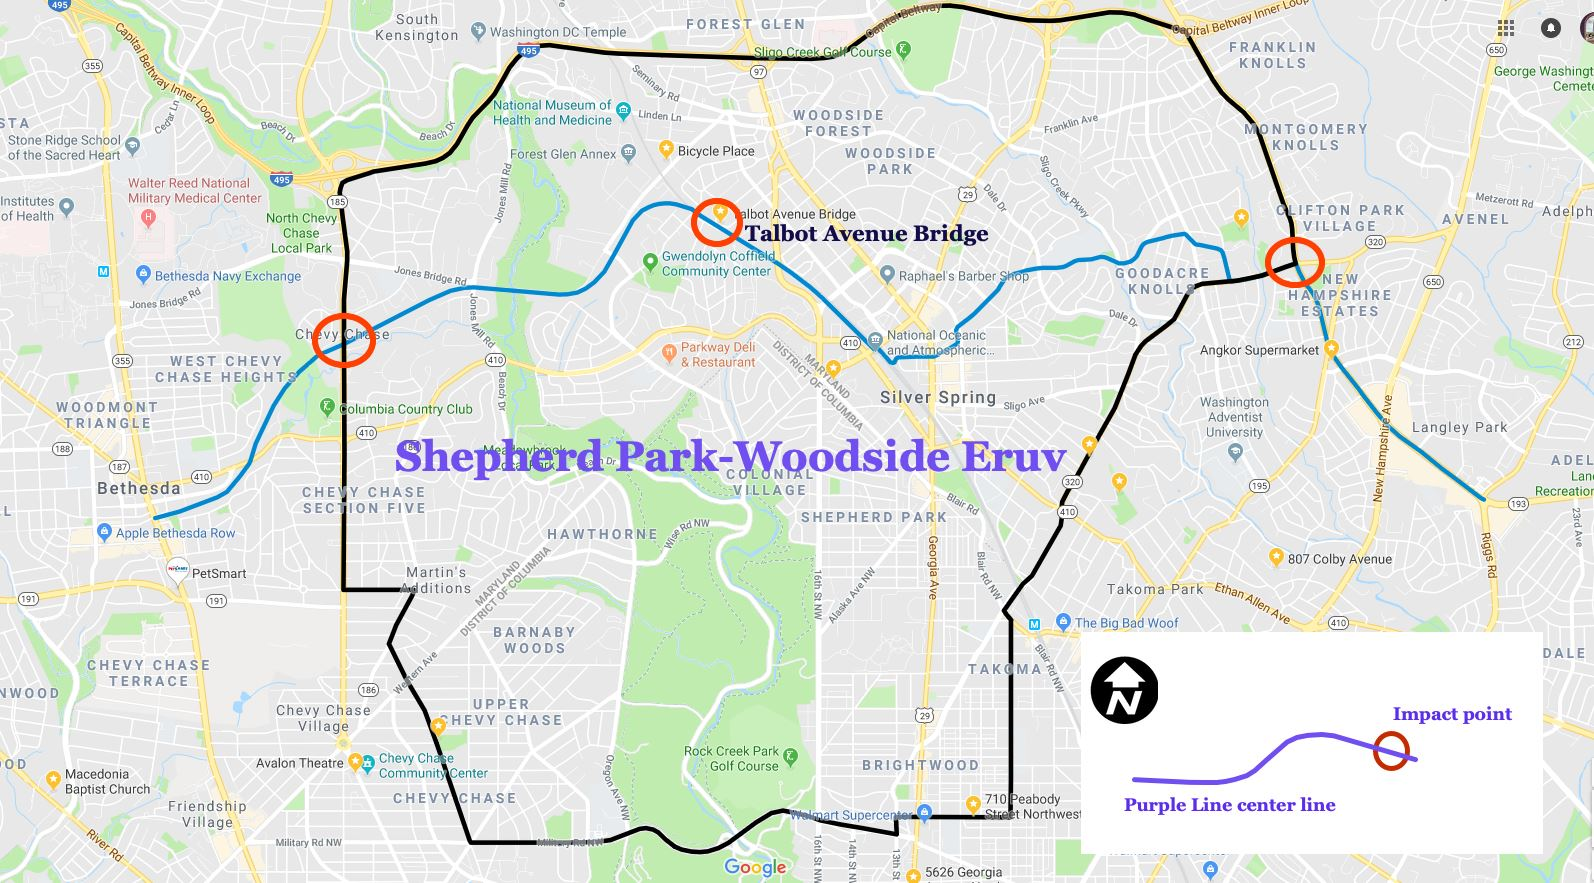 Map illustrating the Shepherd Park-Woodside Eruv and the Purple Line. Base map via Google Maps and Purple Line center line GIS data courtesy of the Montgomery County Department of Planning.